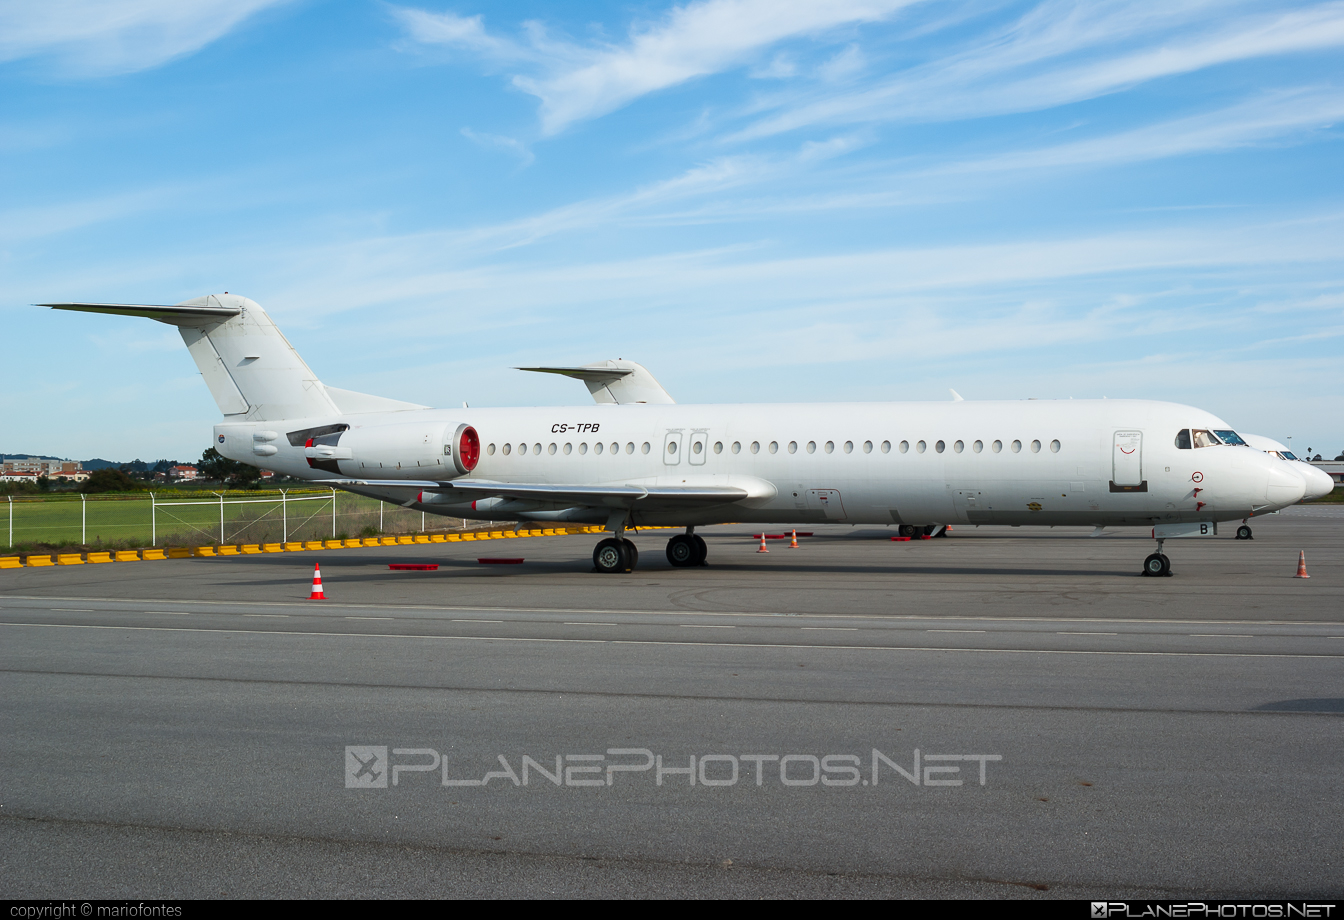 Fokker 100 - CS-TPB operated by Portugália Airlines #fokker #portugaliaairlines